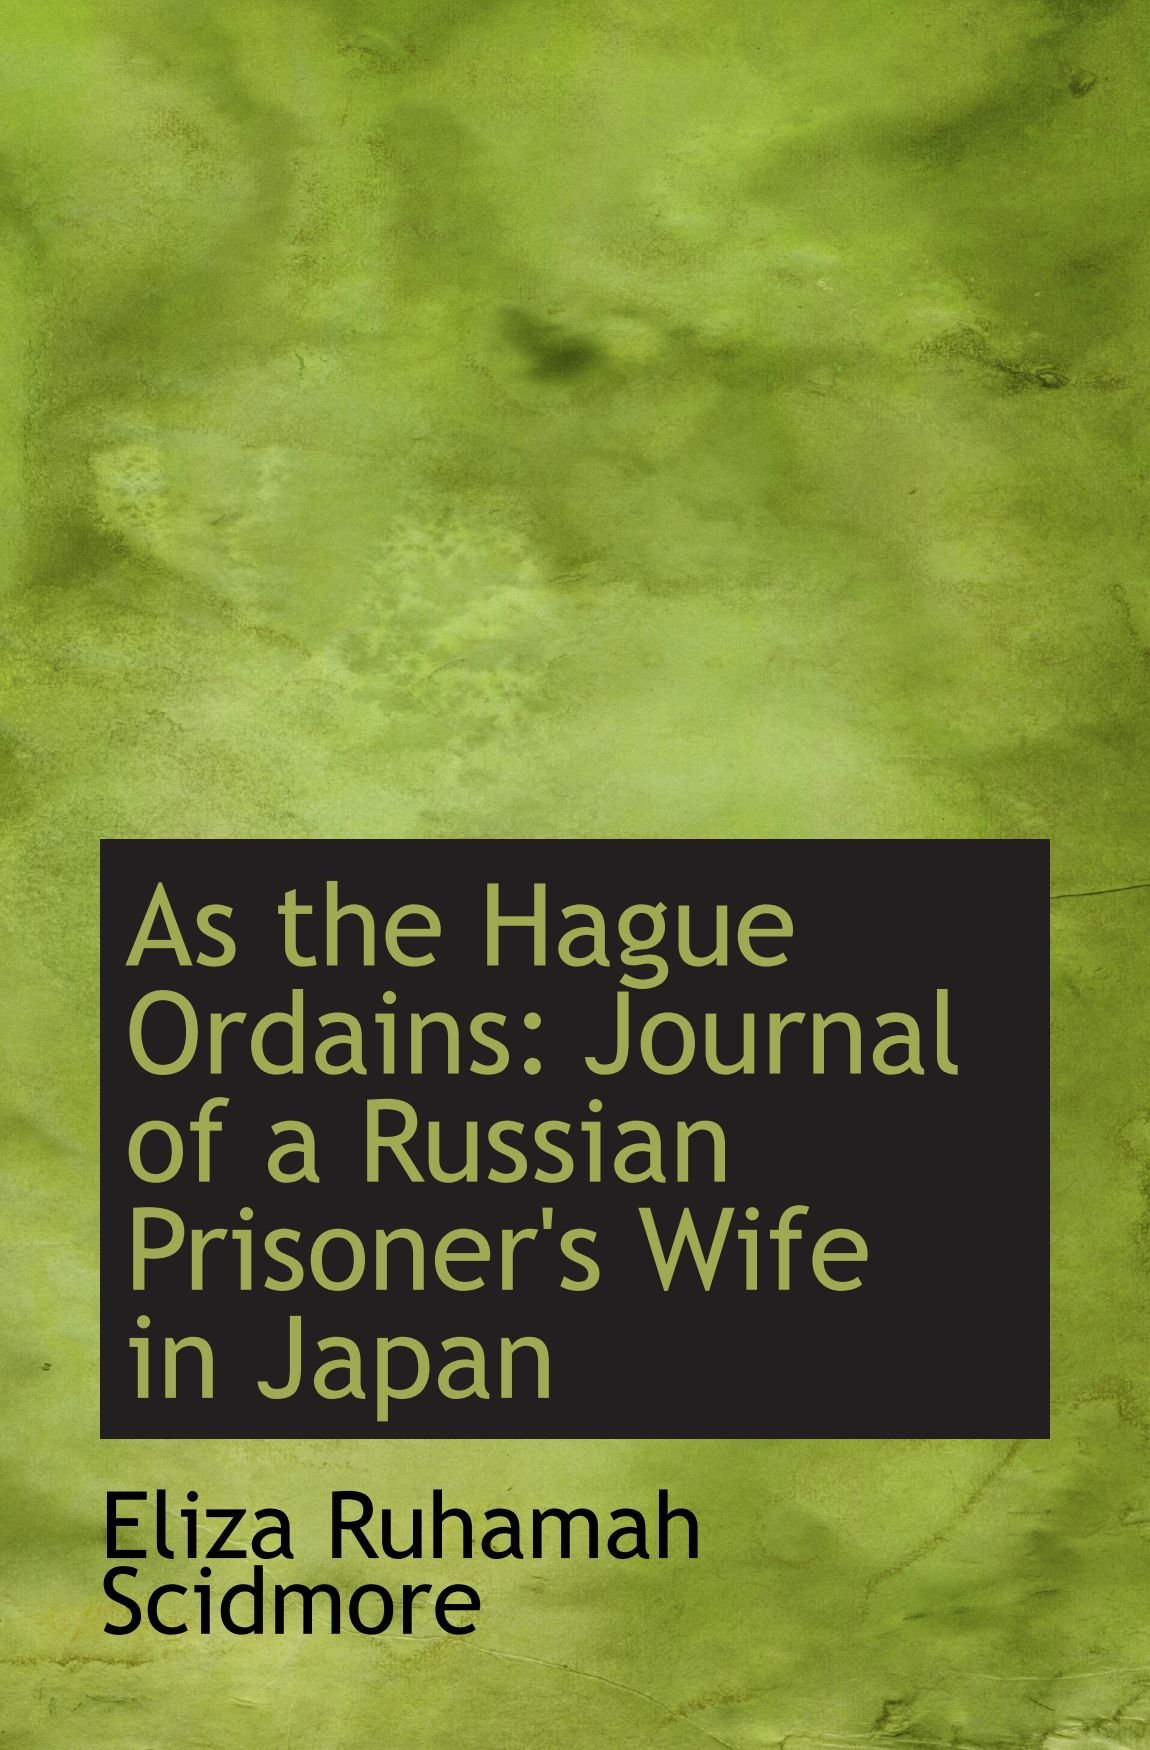 As the Hague Ordains: Journal of a Russian Prisoner's Wife in Japan ebook